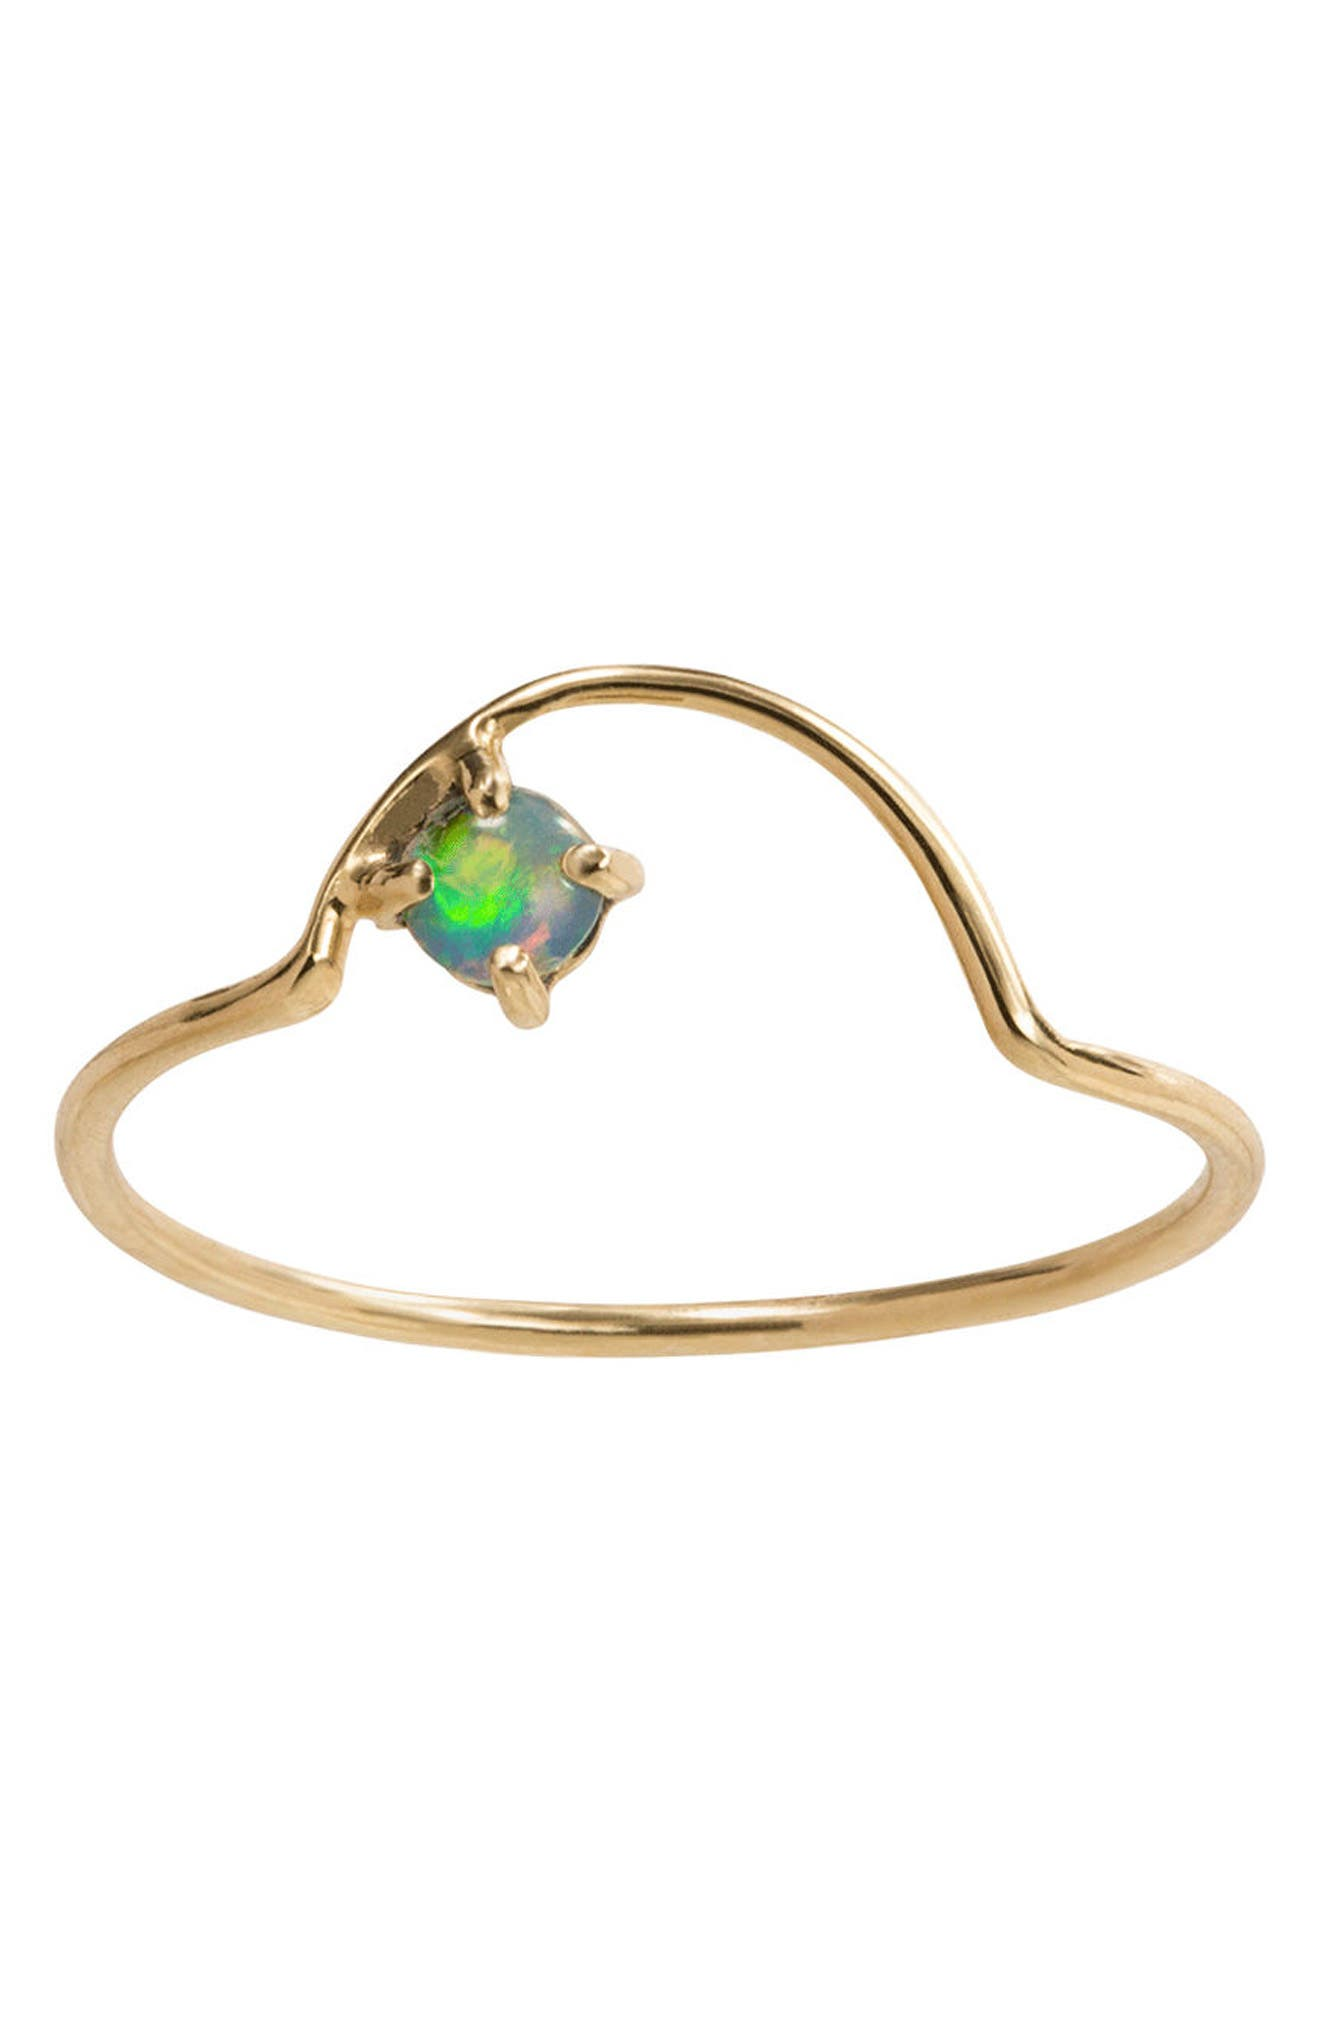 Offset Opal Arc Ring,                         Main,                         color, Opal/ Gold